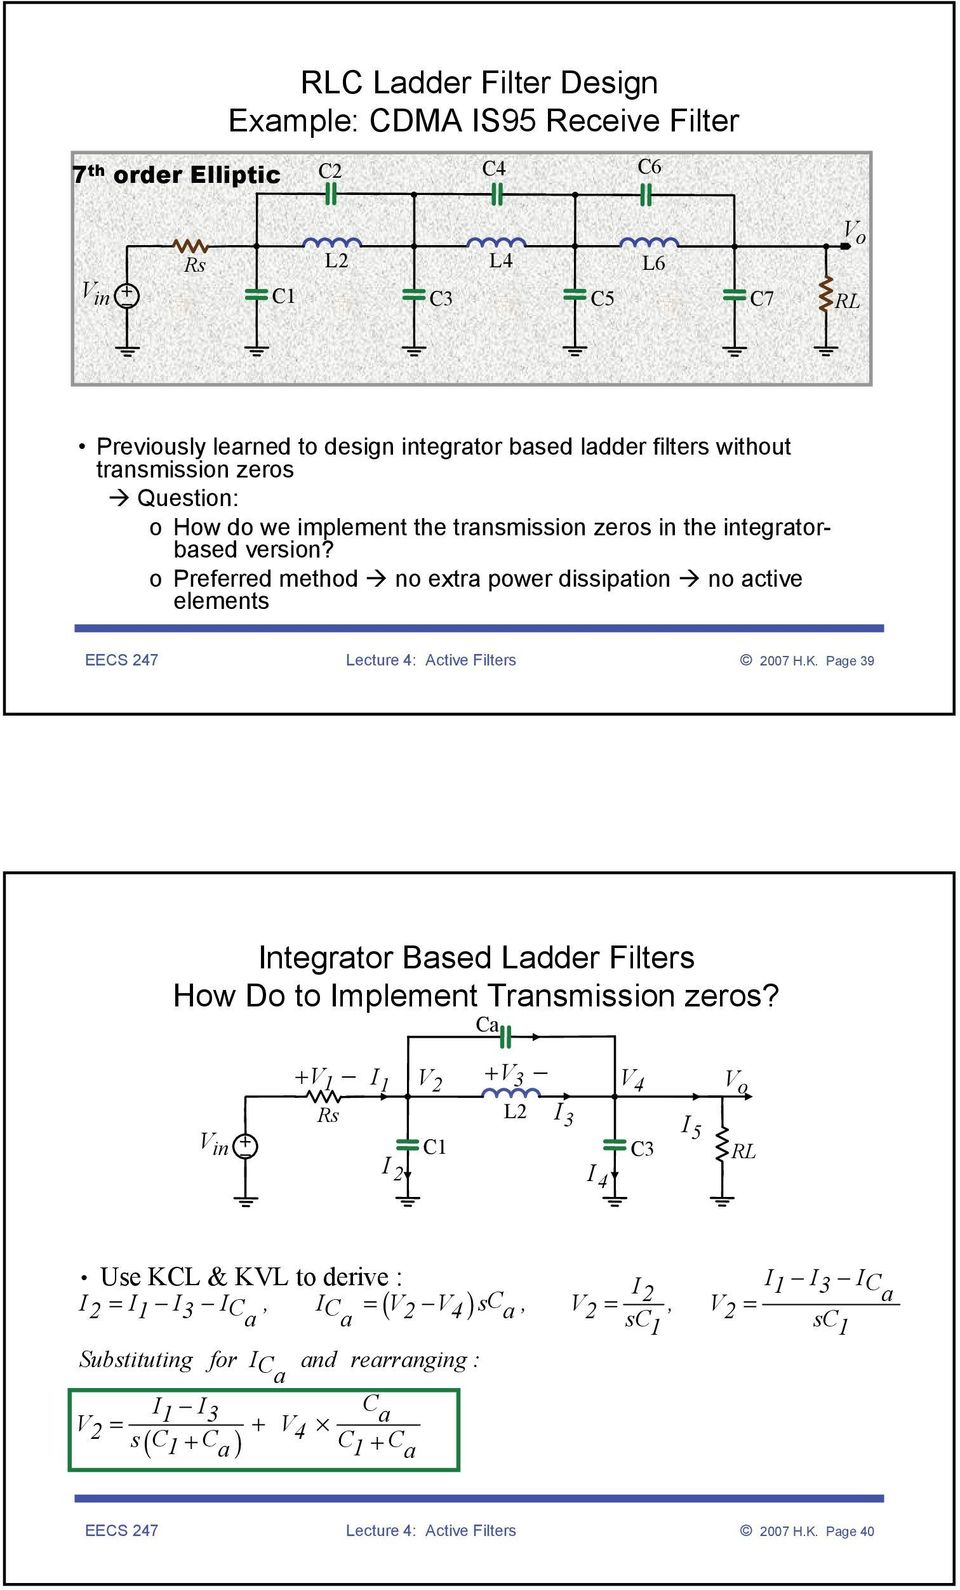 o Preferred method no extr power dissiption no ctive elements EECS 247 Lecture 4: Active Filters 2007 H.K.